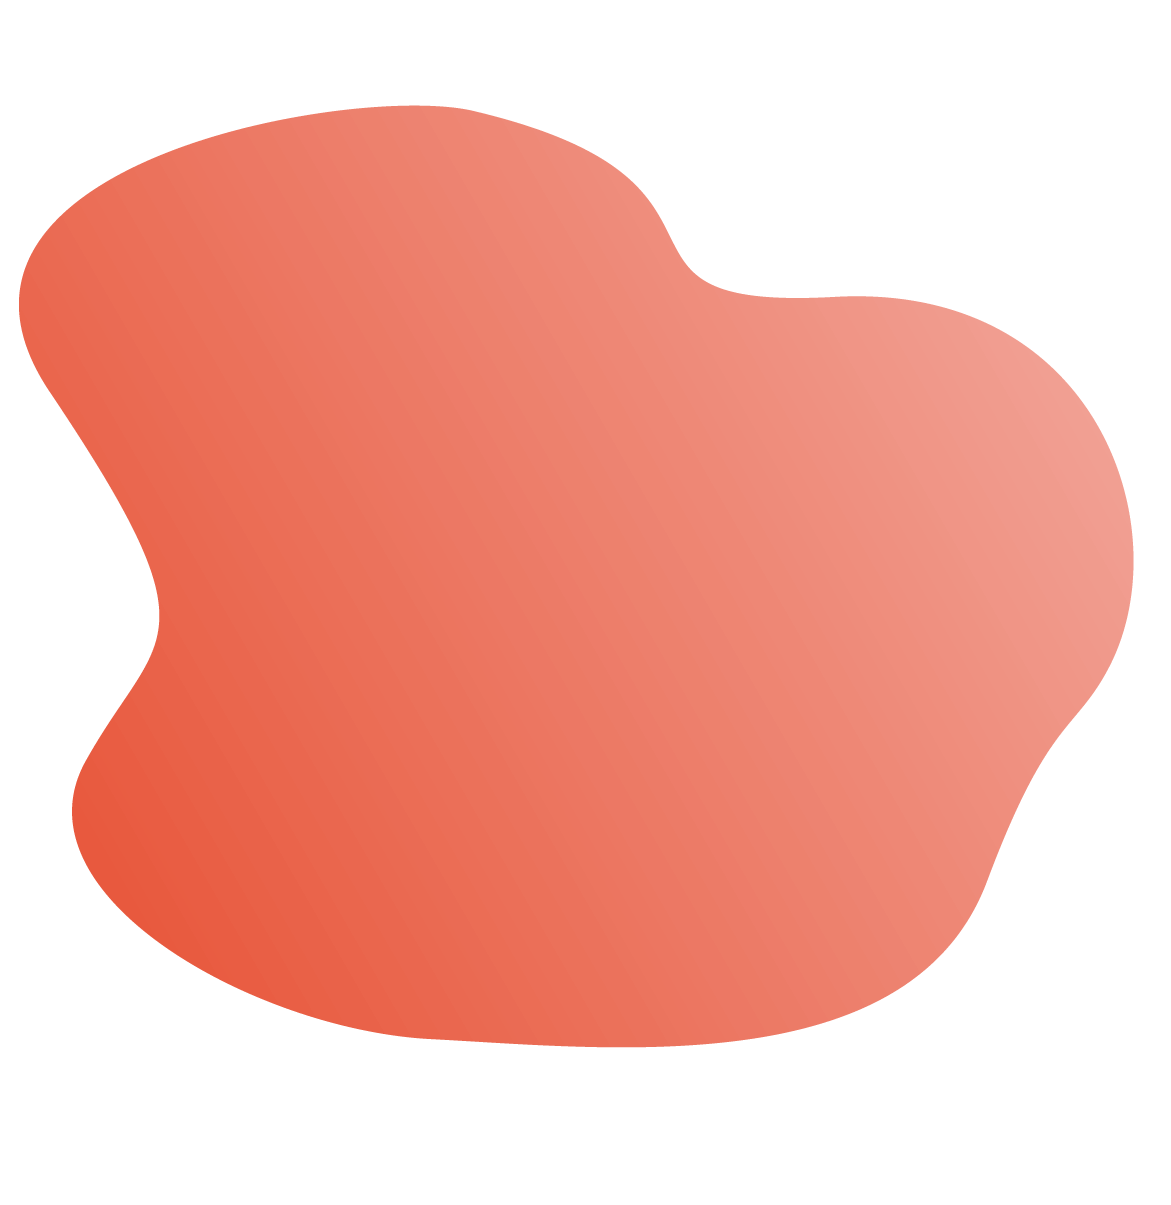 A red blob image used in backgrounds